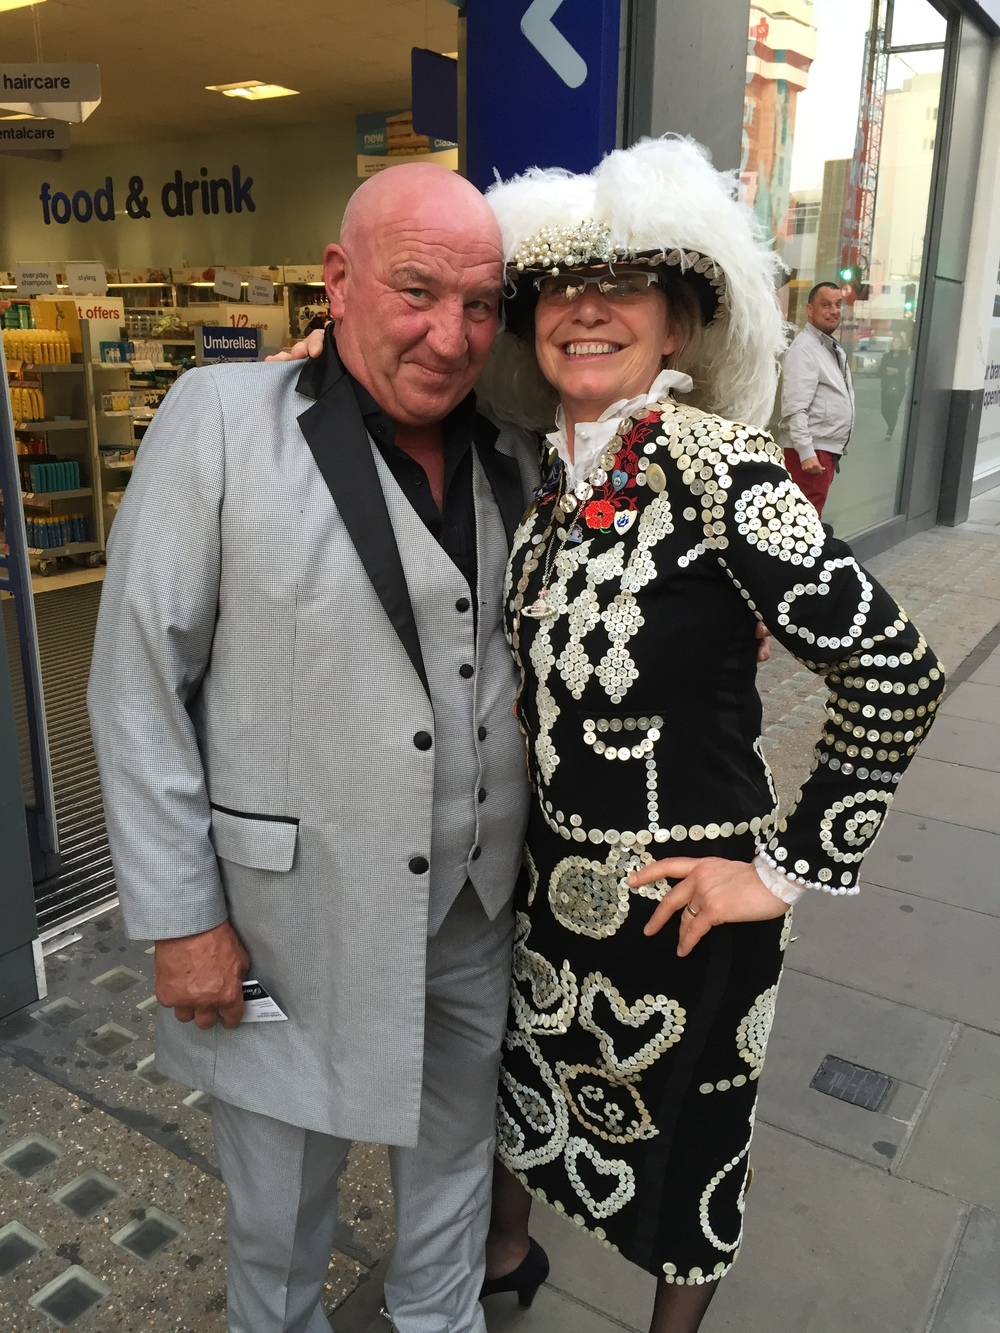 Dave Courtney a proper geezer.